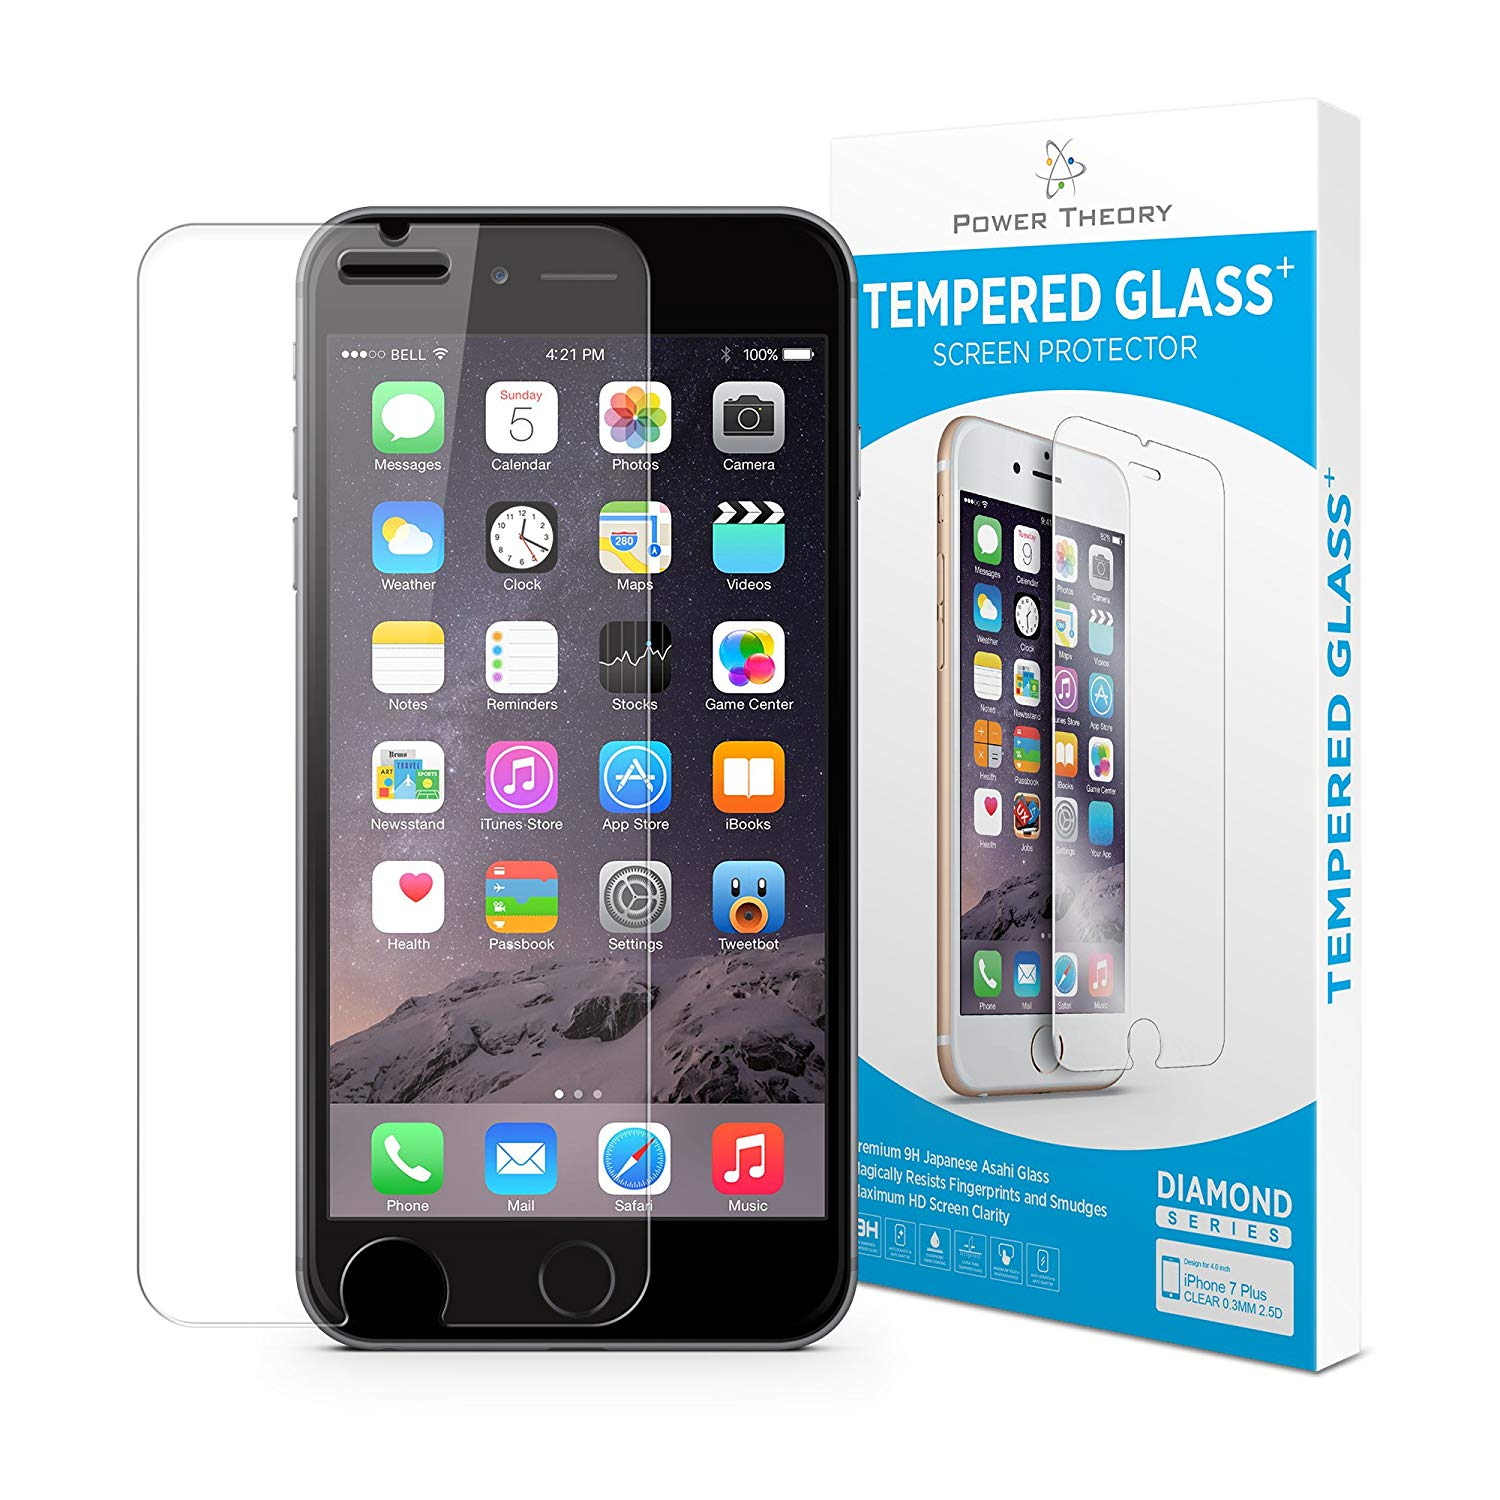 Power Theory iPhone 8 Screen Protectors [1-Pack] Premium Tempered Glass Screen Protector with Easy App Install Kit for Apple iPhone8